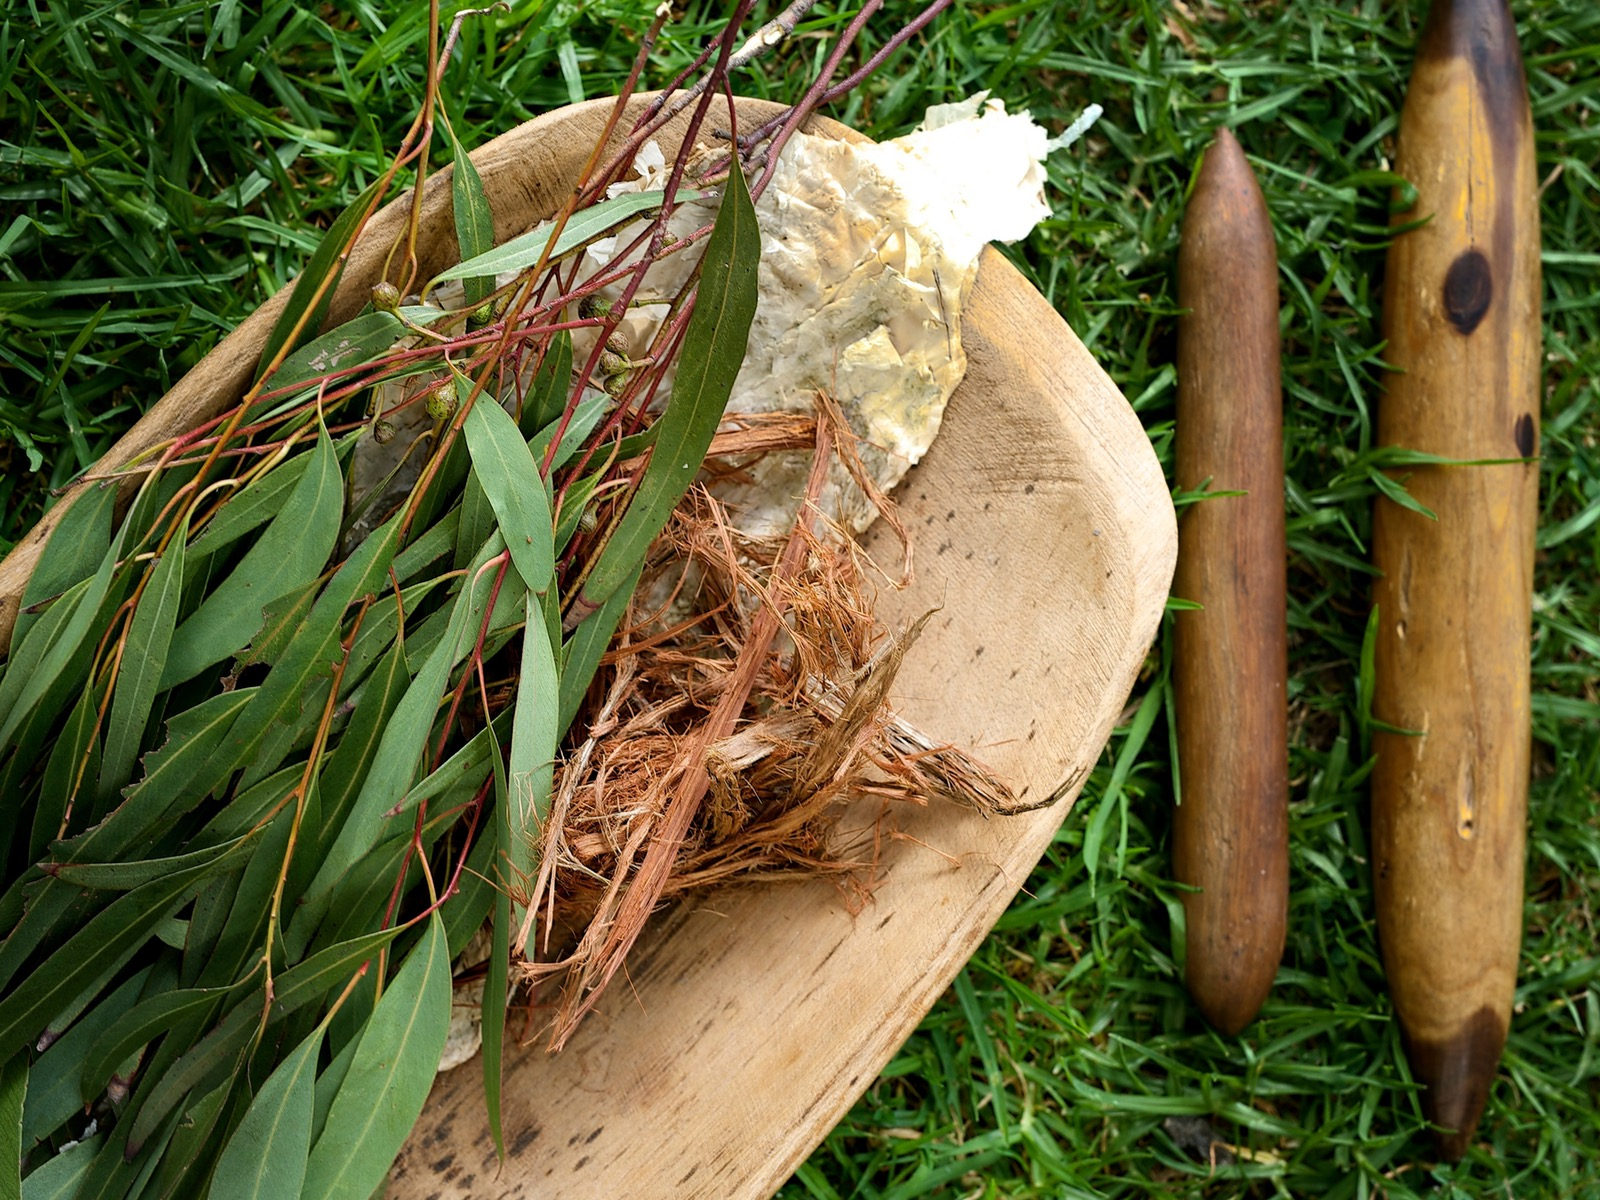 Materials used for traditional tanderum ceremony